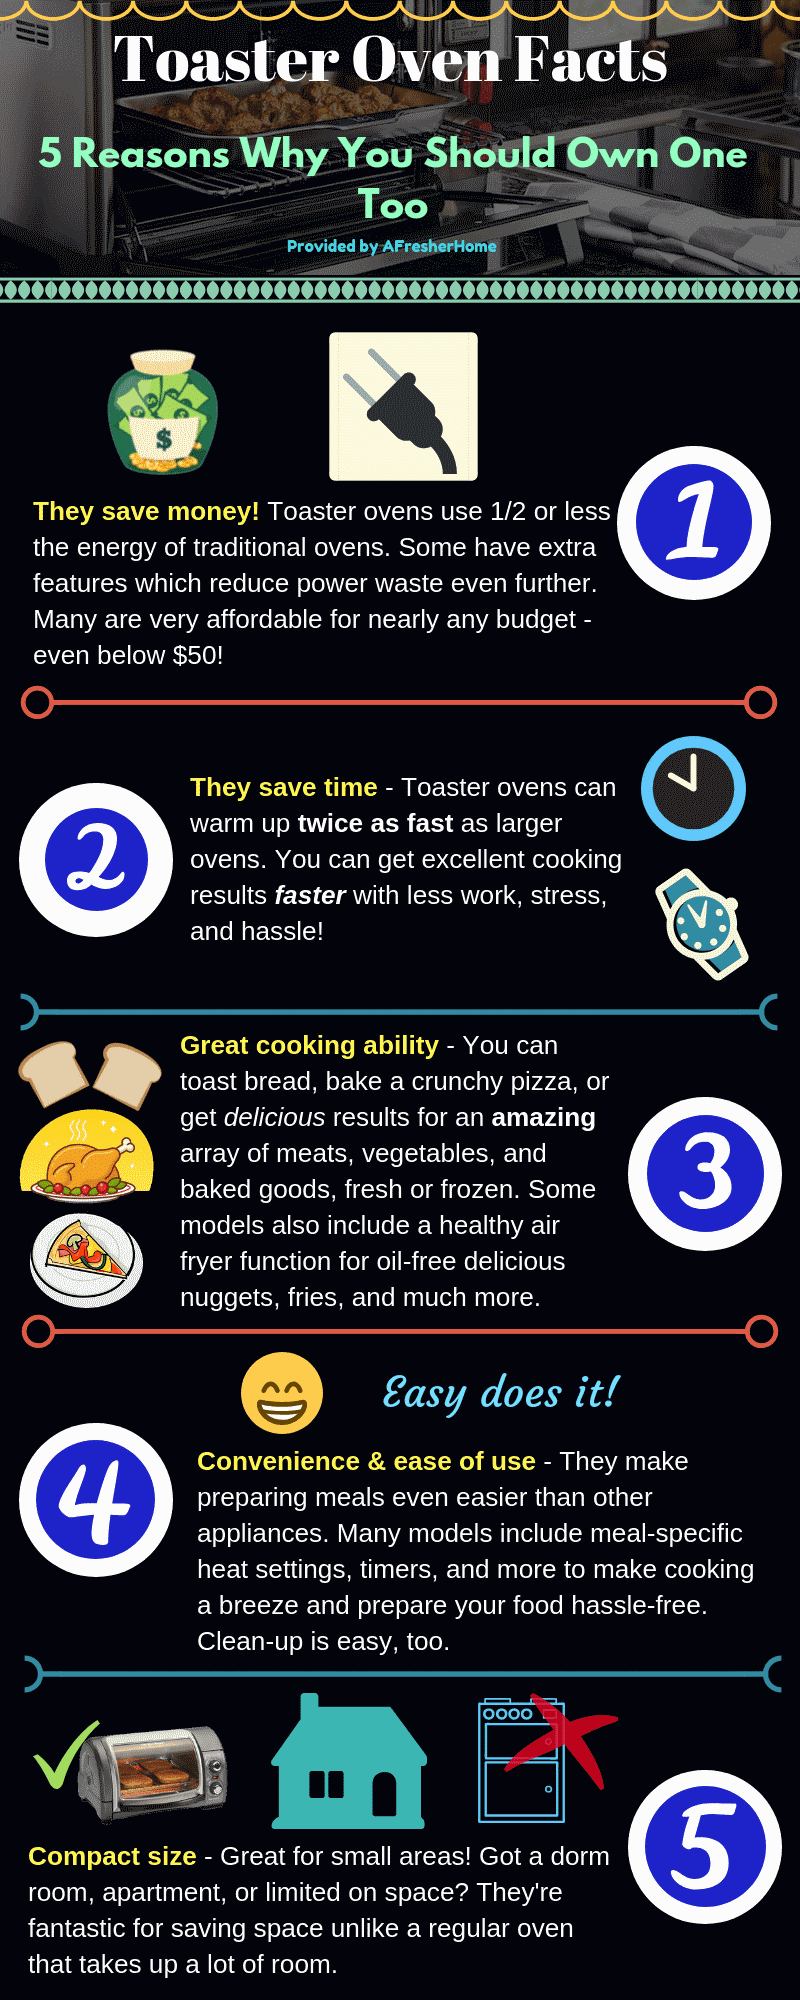 Toaster oven facts infographic